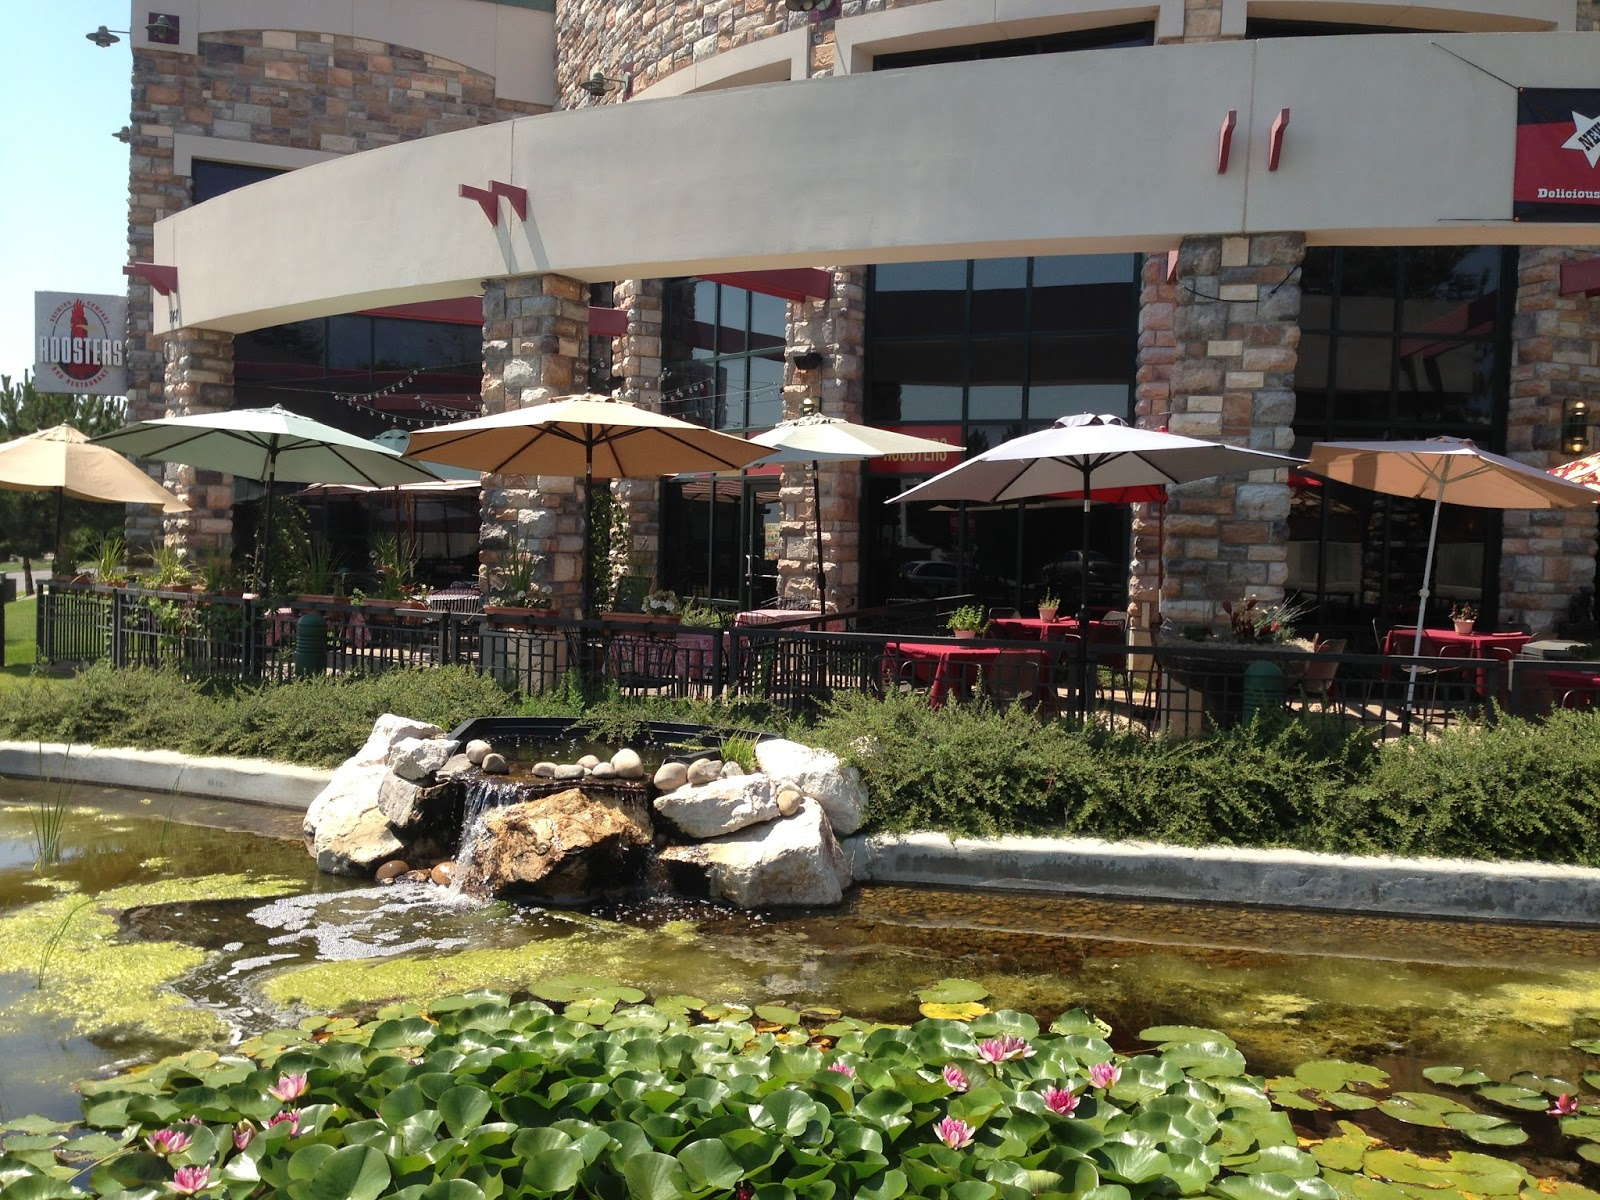 ... Corbinu0027s Grille In Layton (748 W. Heritage Park Blvd., Layton) These  Two (separately Owned) Restaurants Share Patios That Overlook A Waterfall  Pool With ...